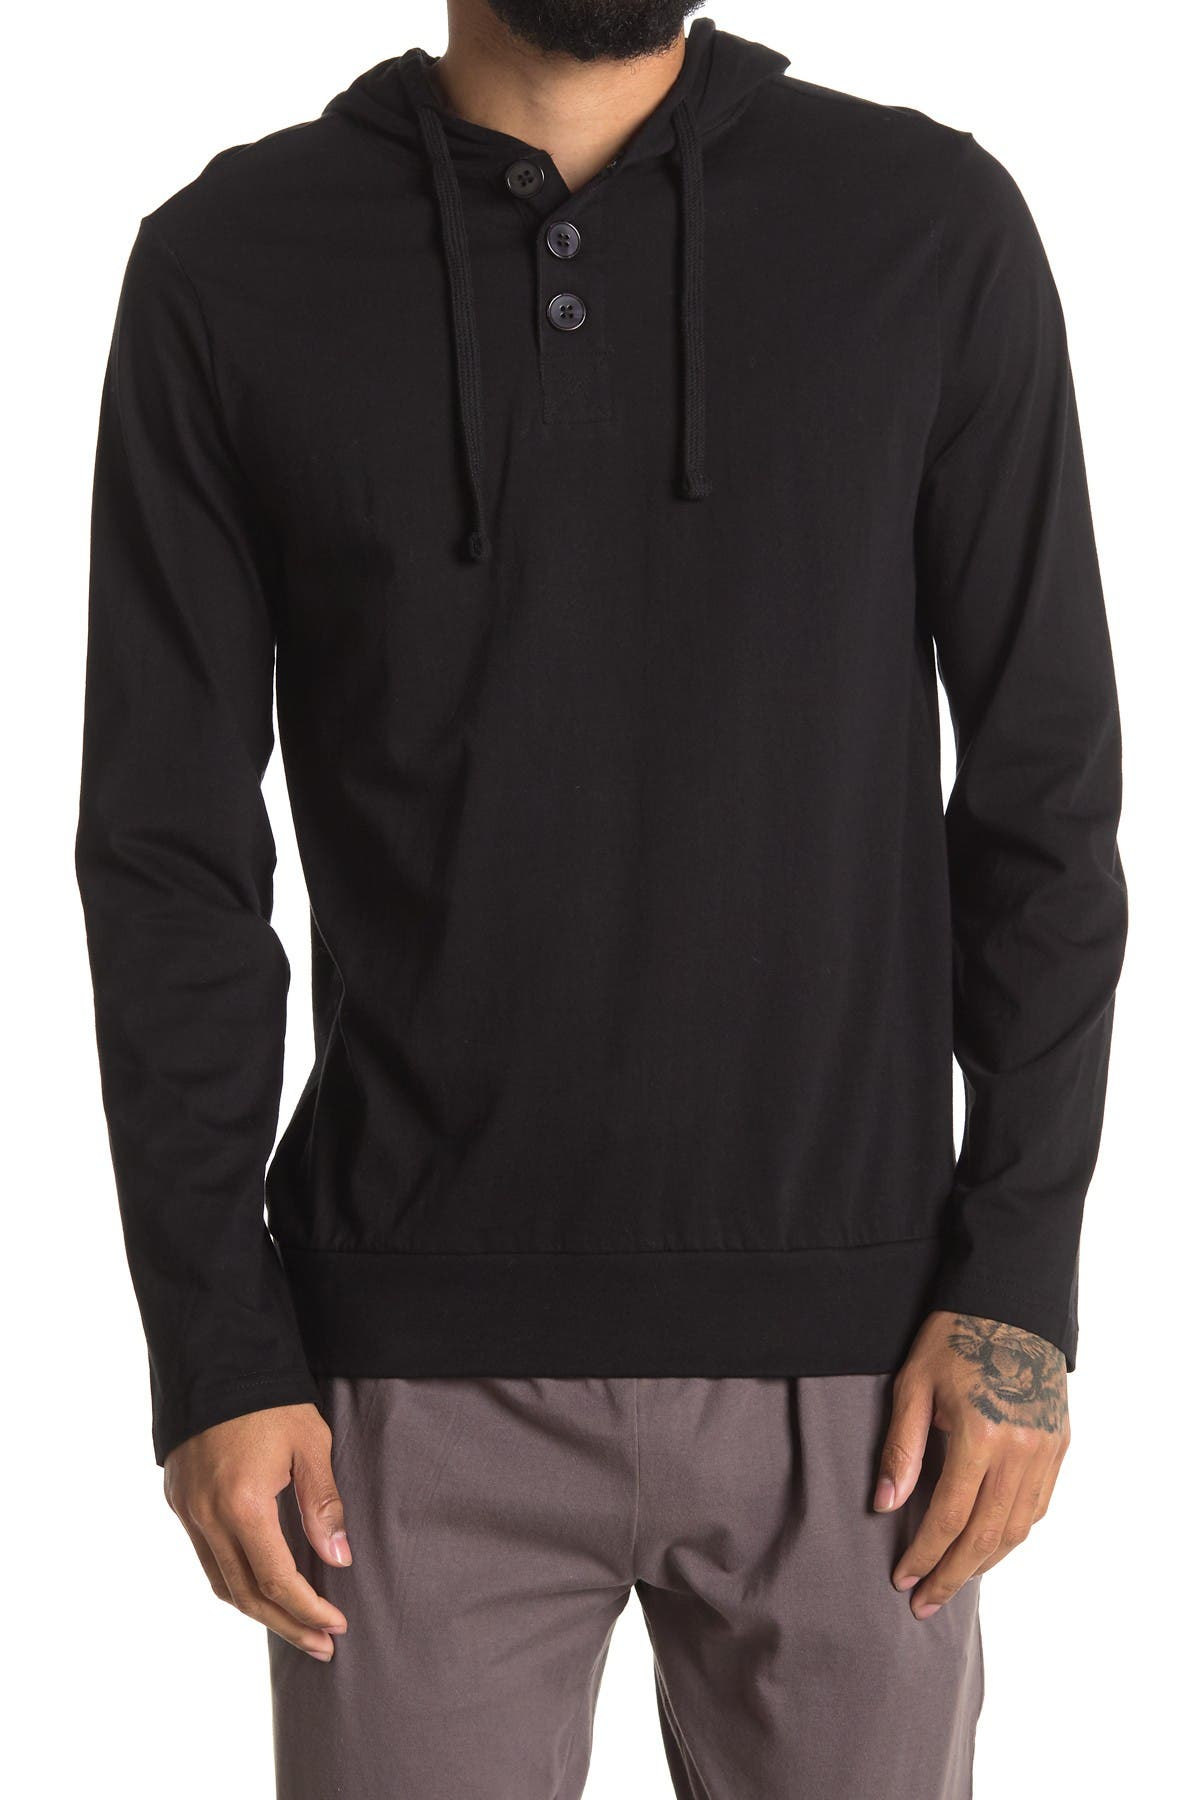 Image of Unsimply Stitched Long Sleeve Light Weight Hooded Henley